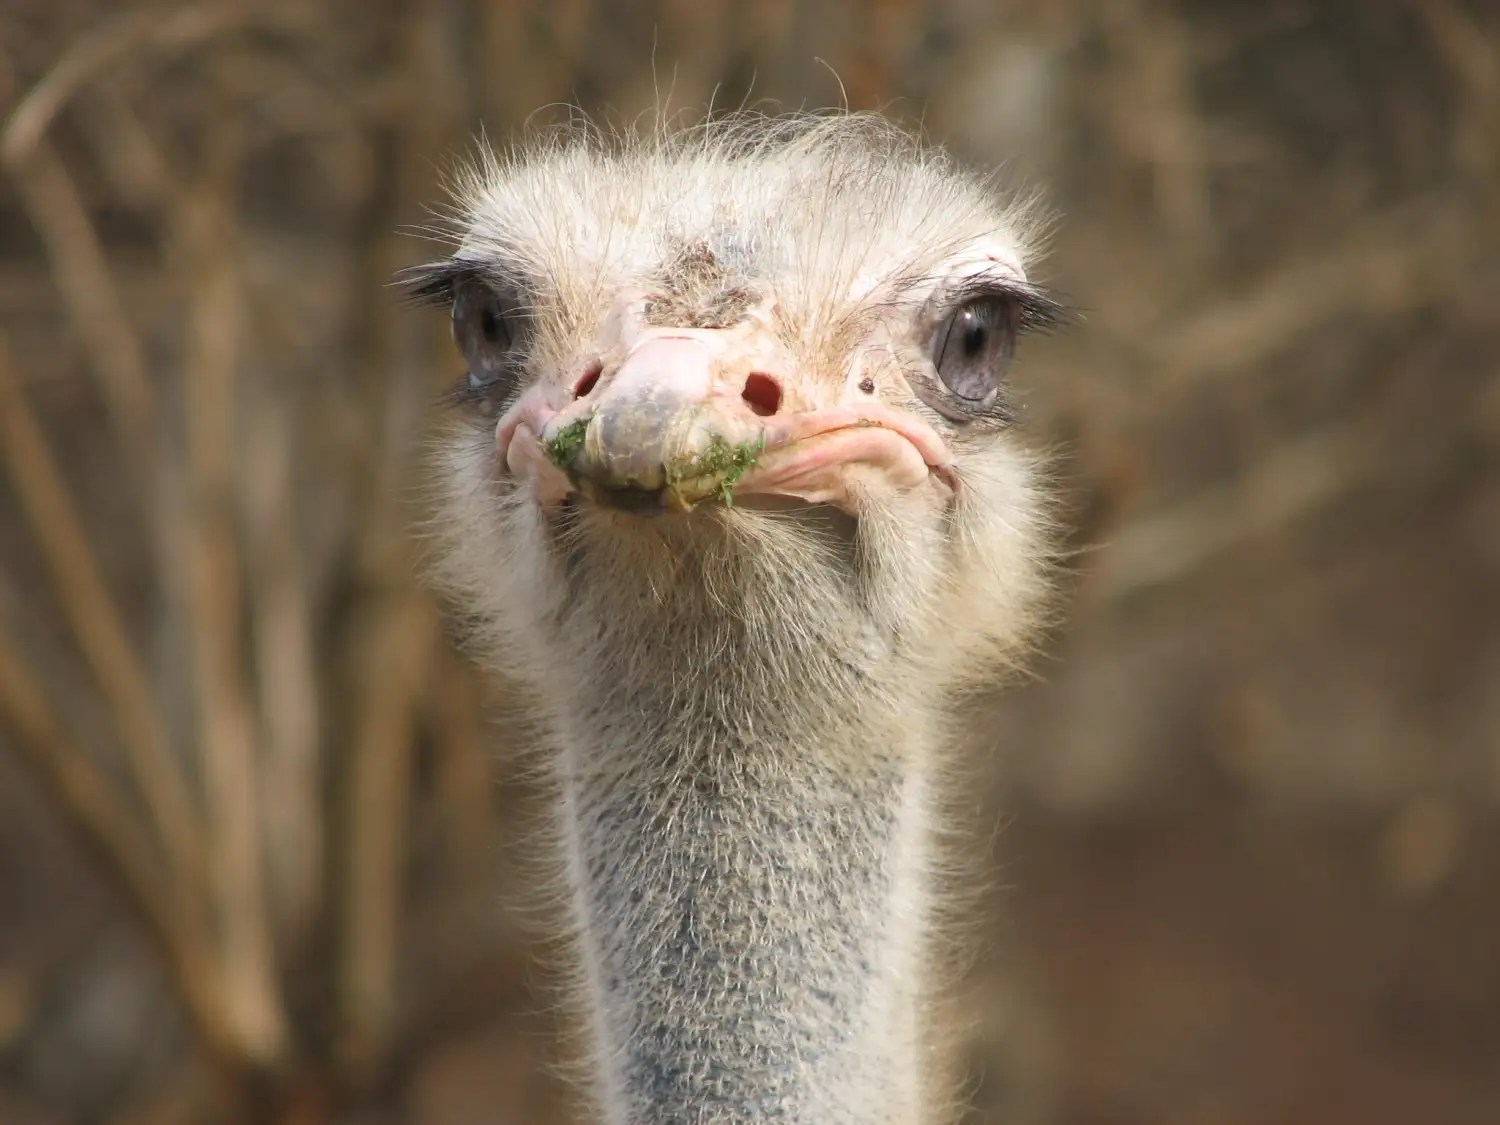 Ostriches do not stick their heads in the sand when threatened. Actually they don't bury their heads at all. When threatened, ostriches flop on the ground and play dead.